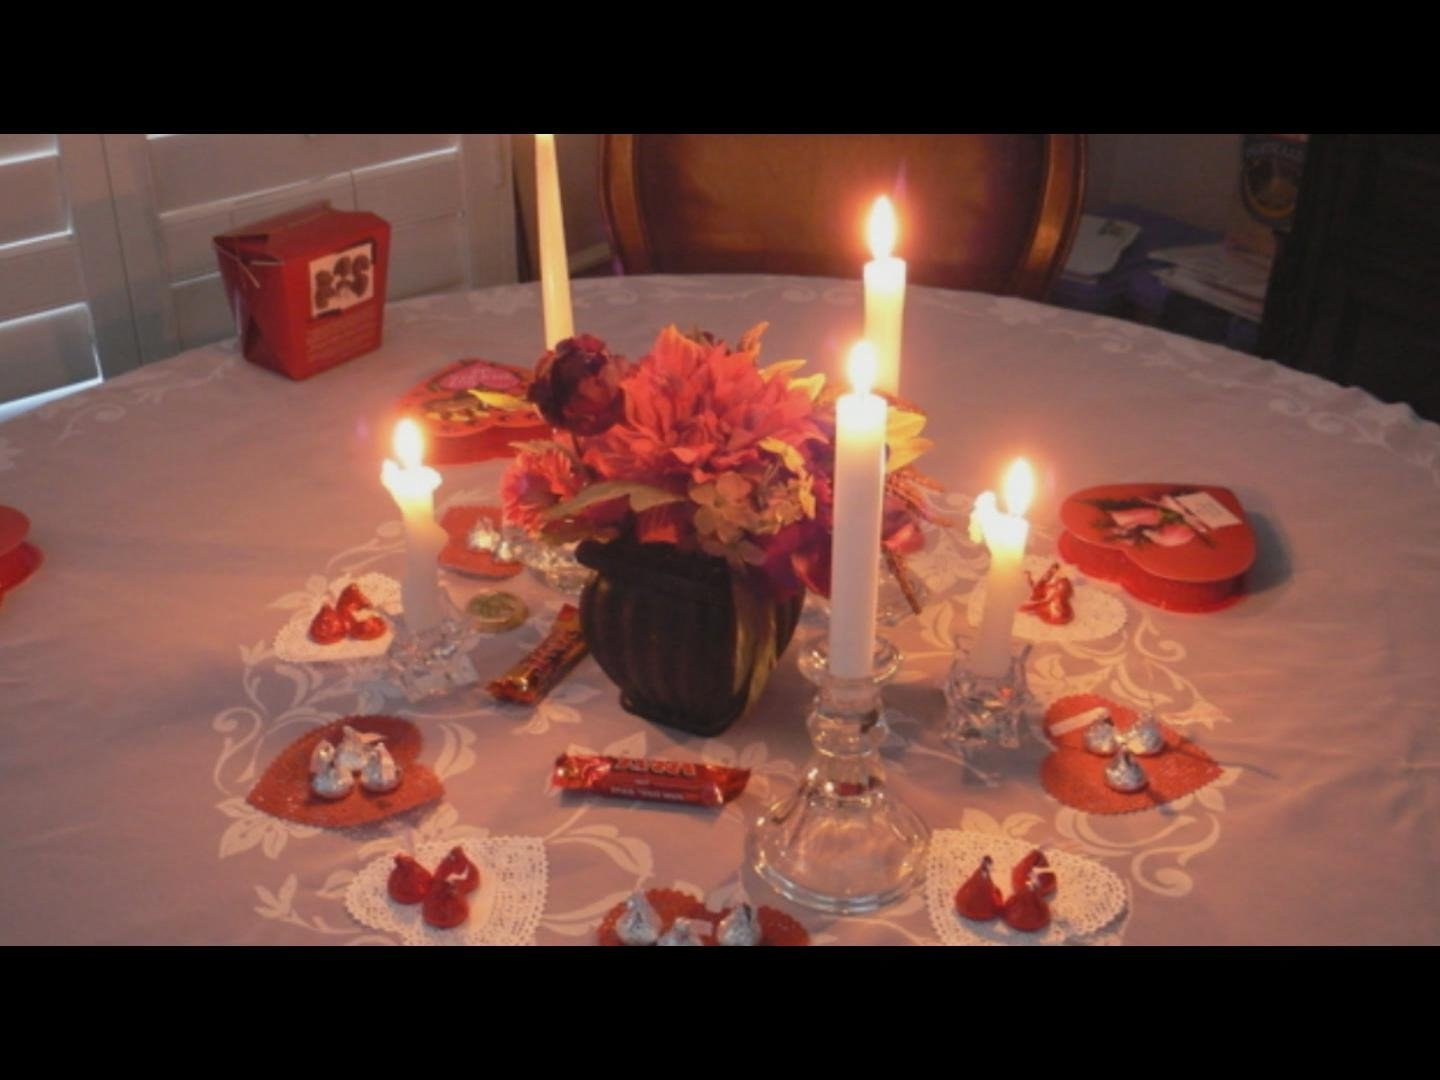 10 Fabulous Ideas For Romantic Night At Home pretty ideas for a romantic night at home home designs 3 2020